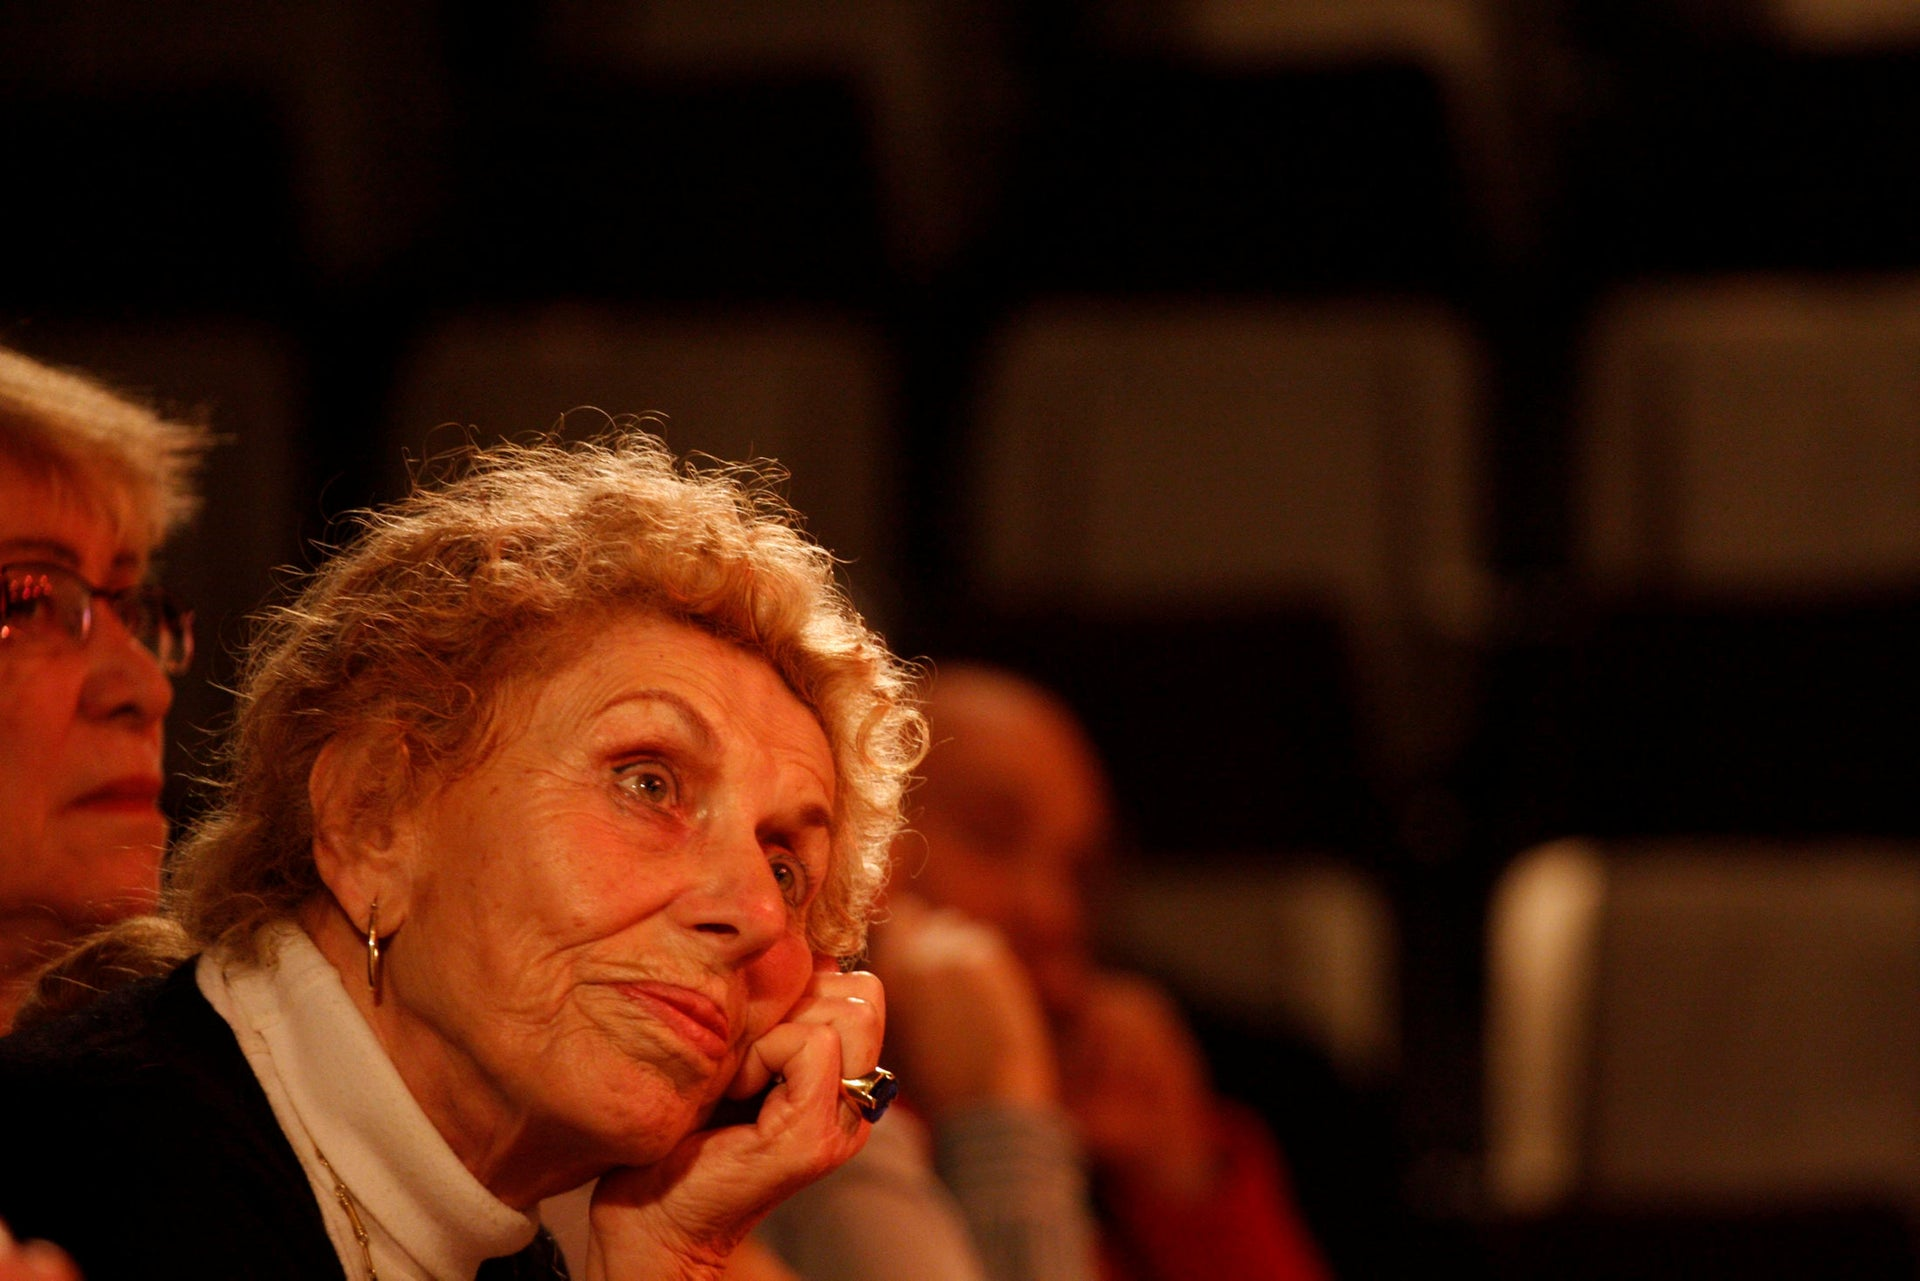 The former leader of Meretz and founder of the Ratz party, the late Shulamit Aloni. Achieved Meretz's best election result, in 1992.